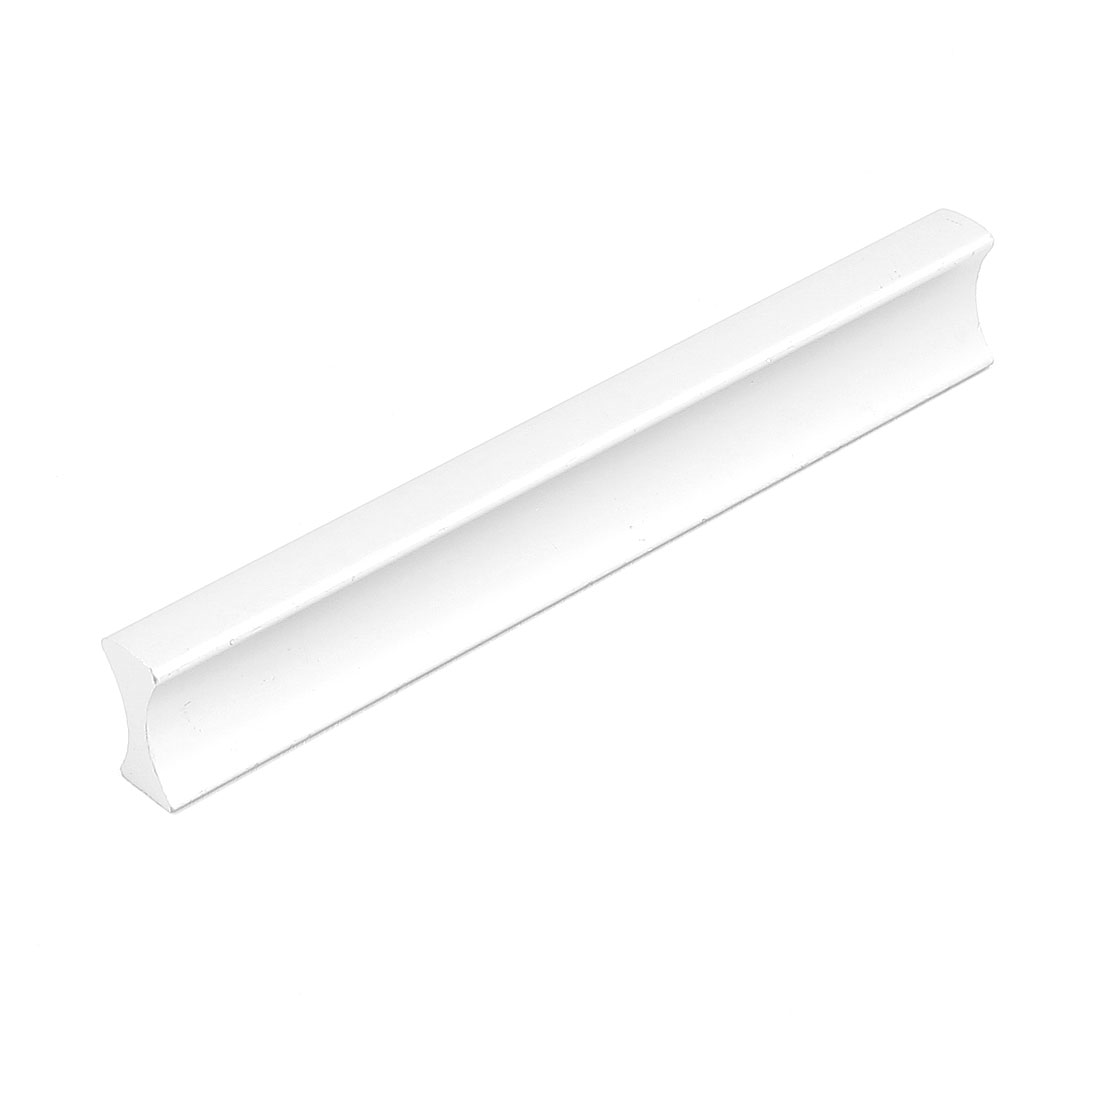 105mm Long Furniture Cabinet Drawer Aluminium Alloy Rectangle Pull Handle